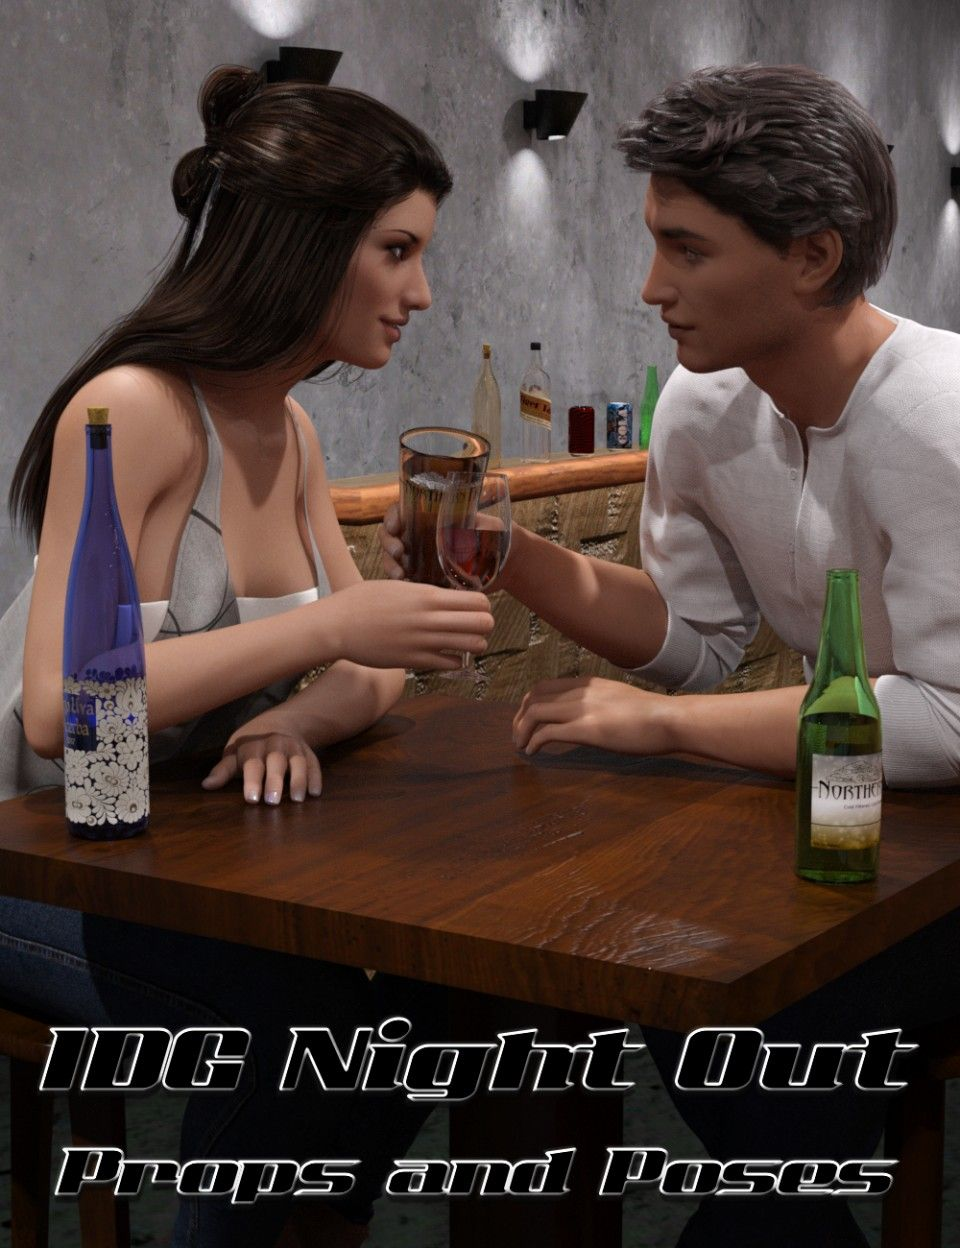 IDG Night Out Props and Poses | Daz Poser | Studio, Poses, Store